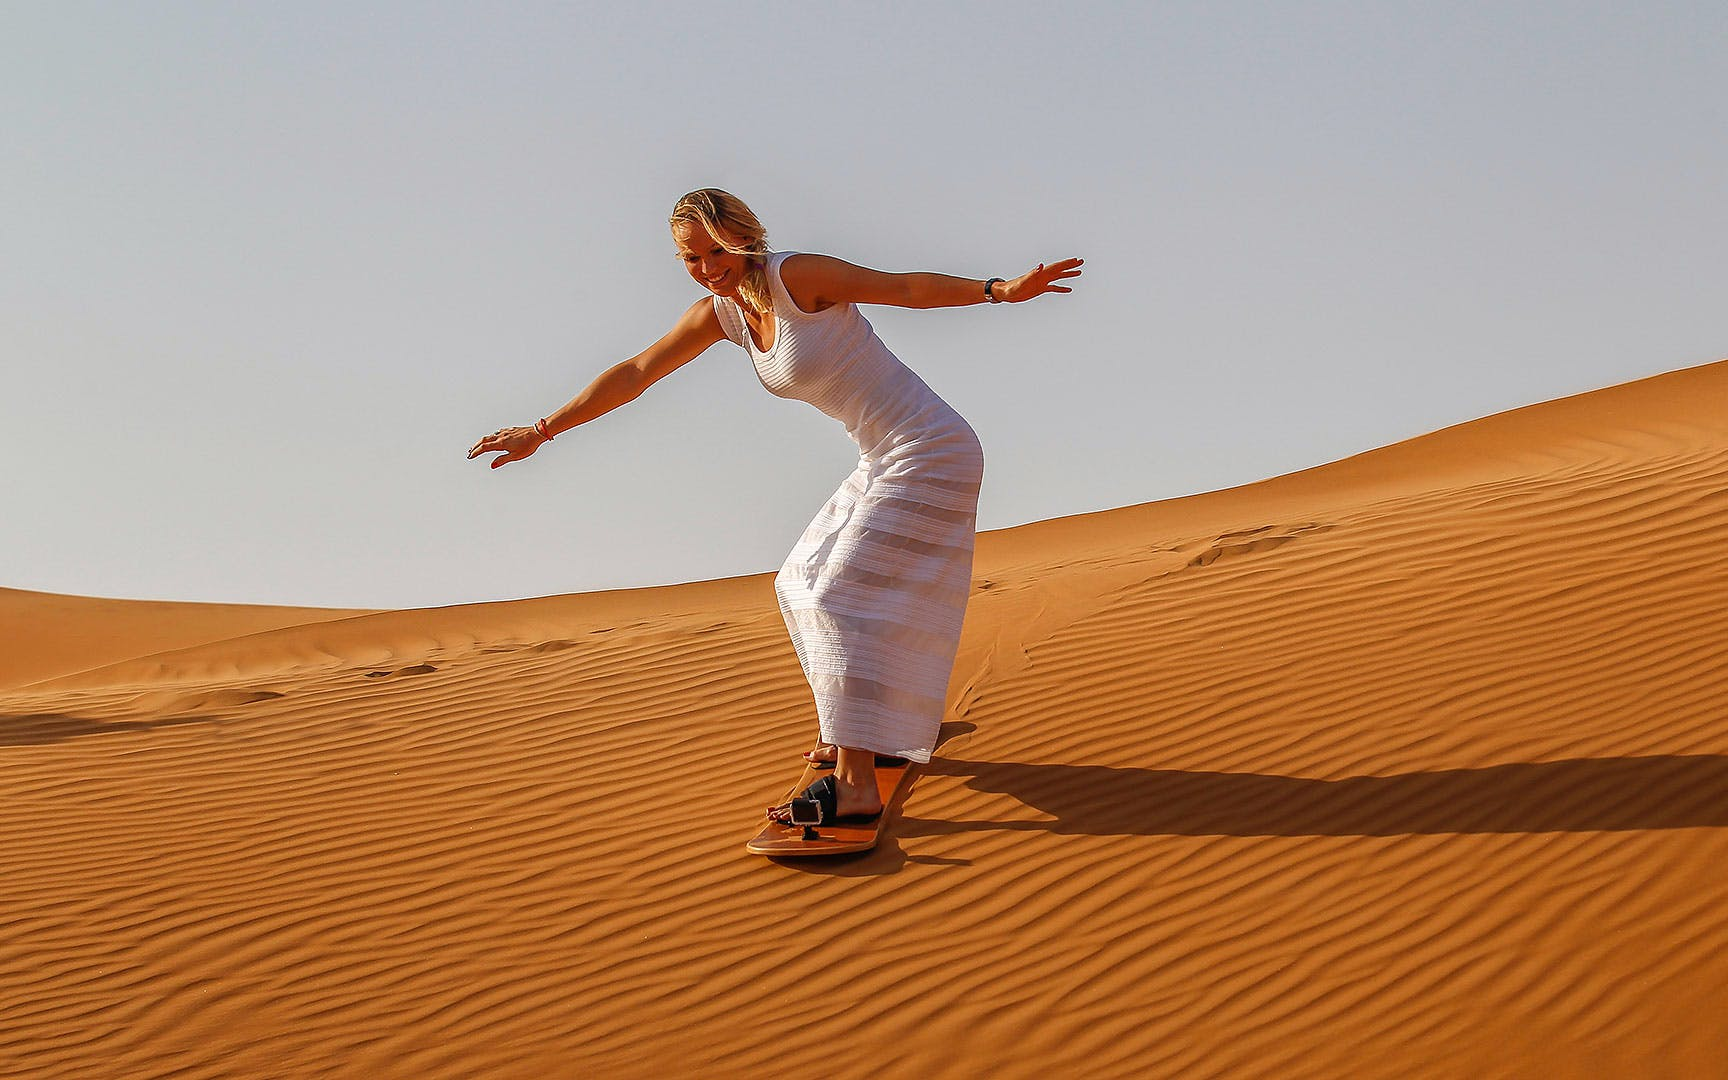 desert adventure combo - camel ride, quad biking & sand boarding-1